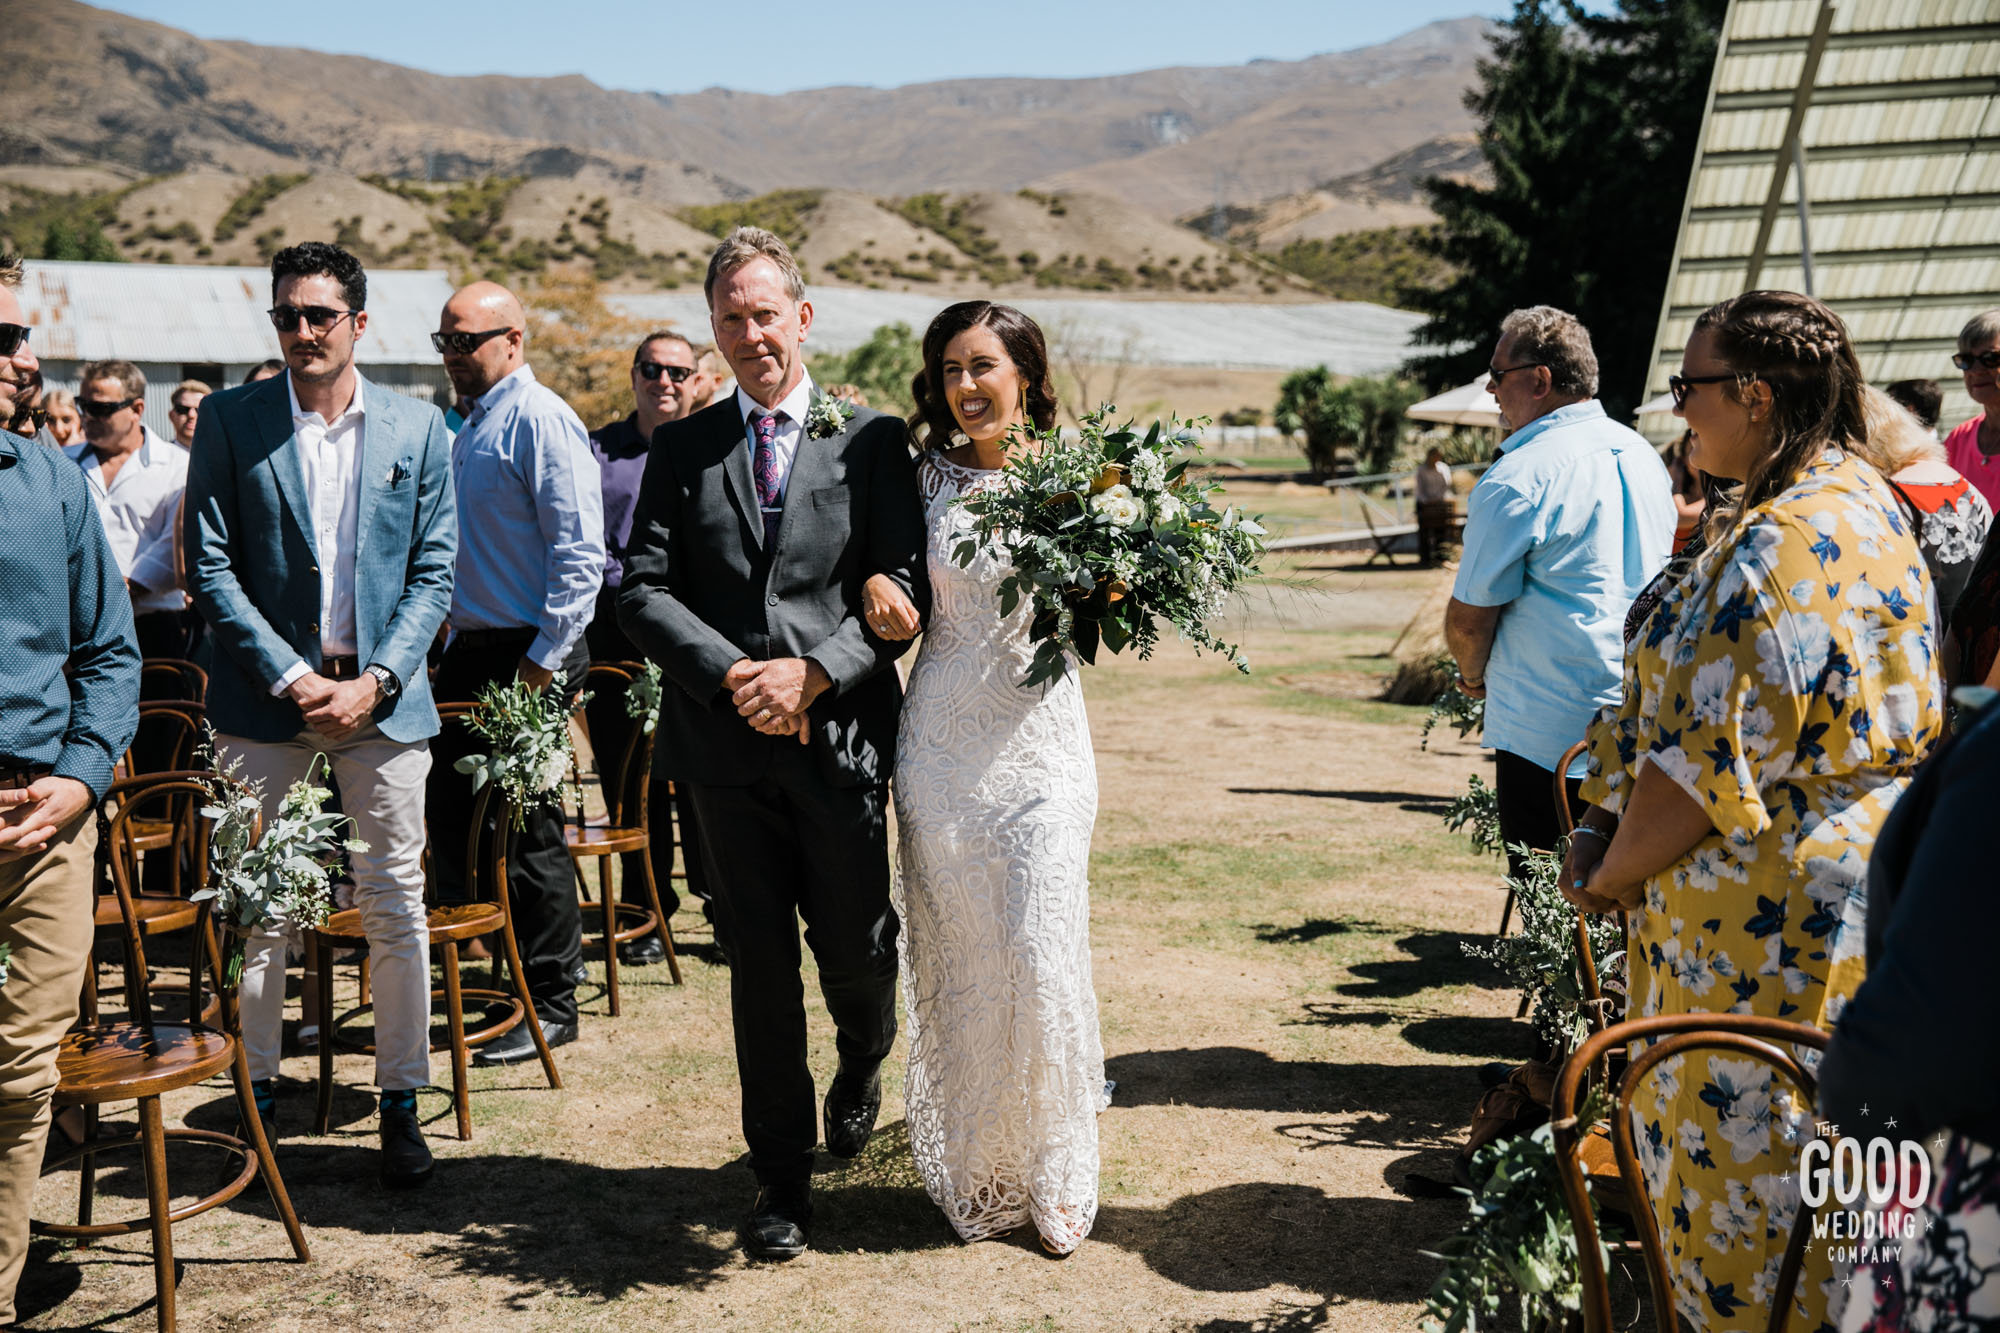 The-Good-Wedding-Company-LaurenLukas-Peregrine-Winery-Wanaka-Photographer-151.jpg